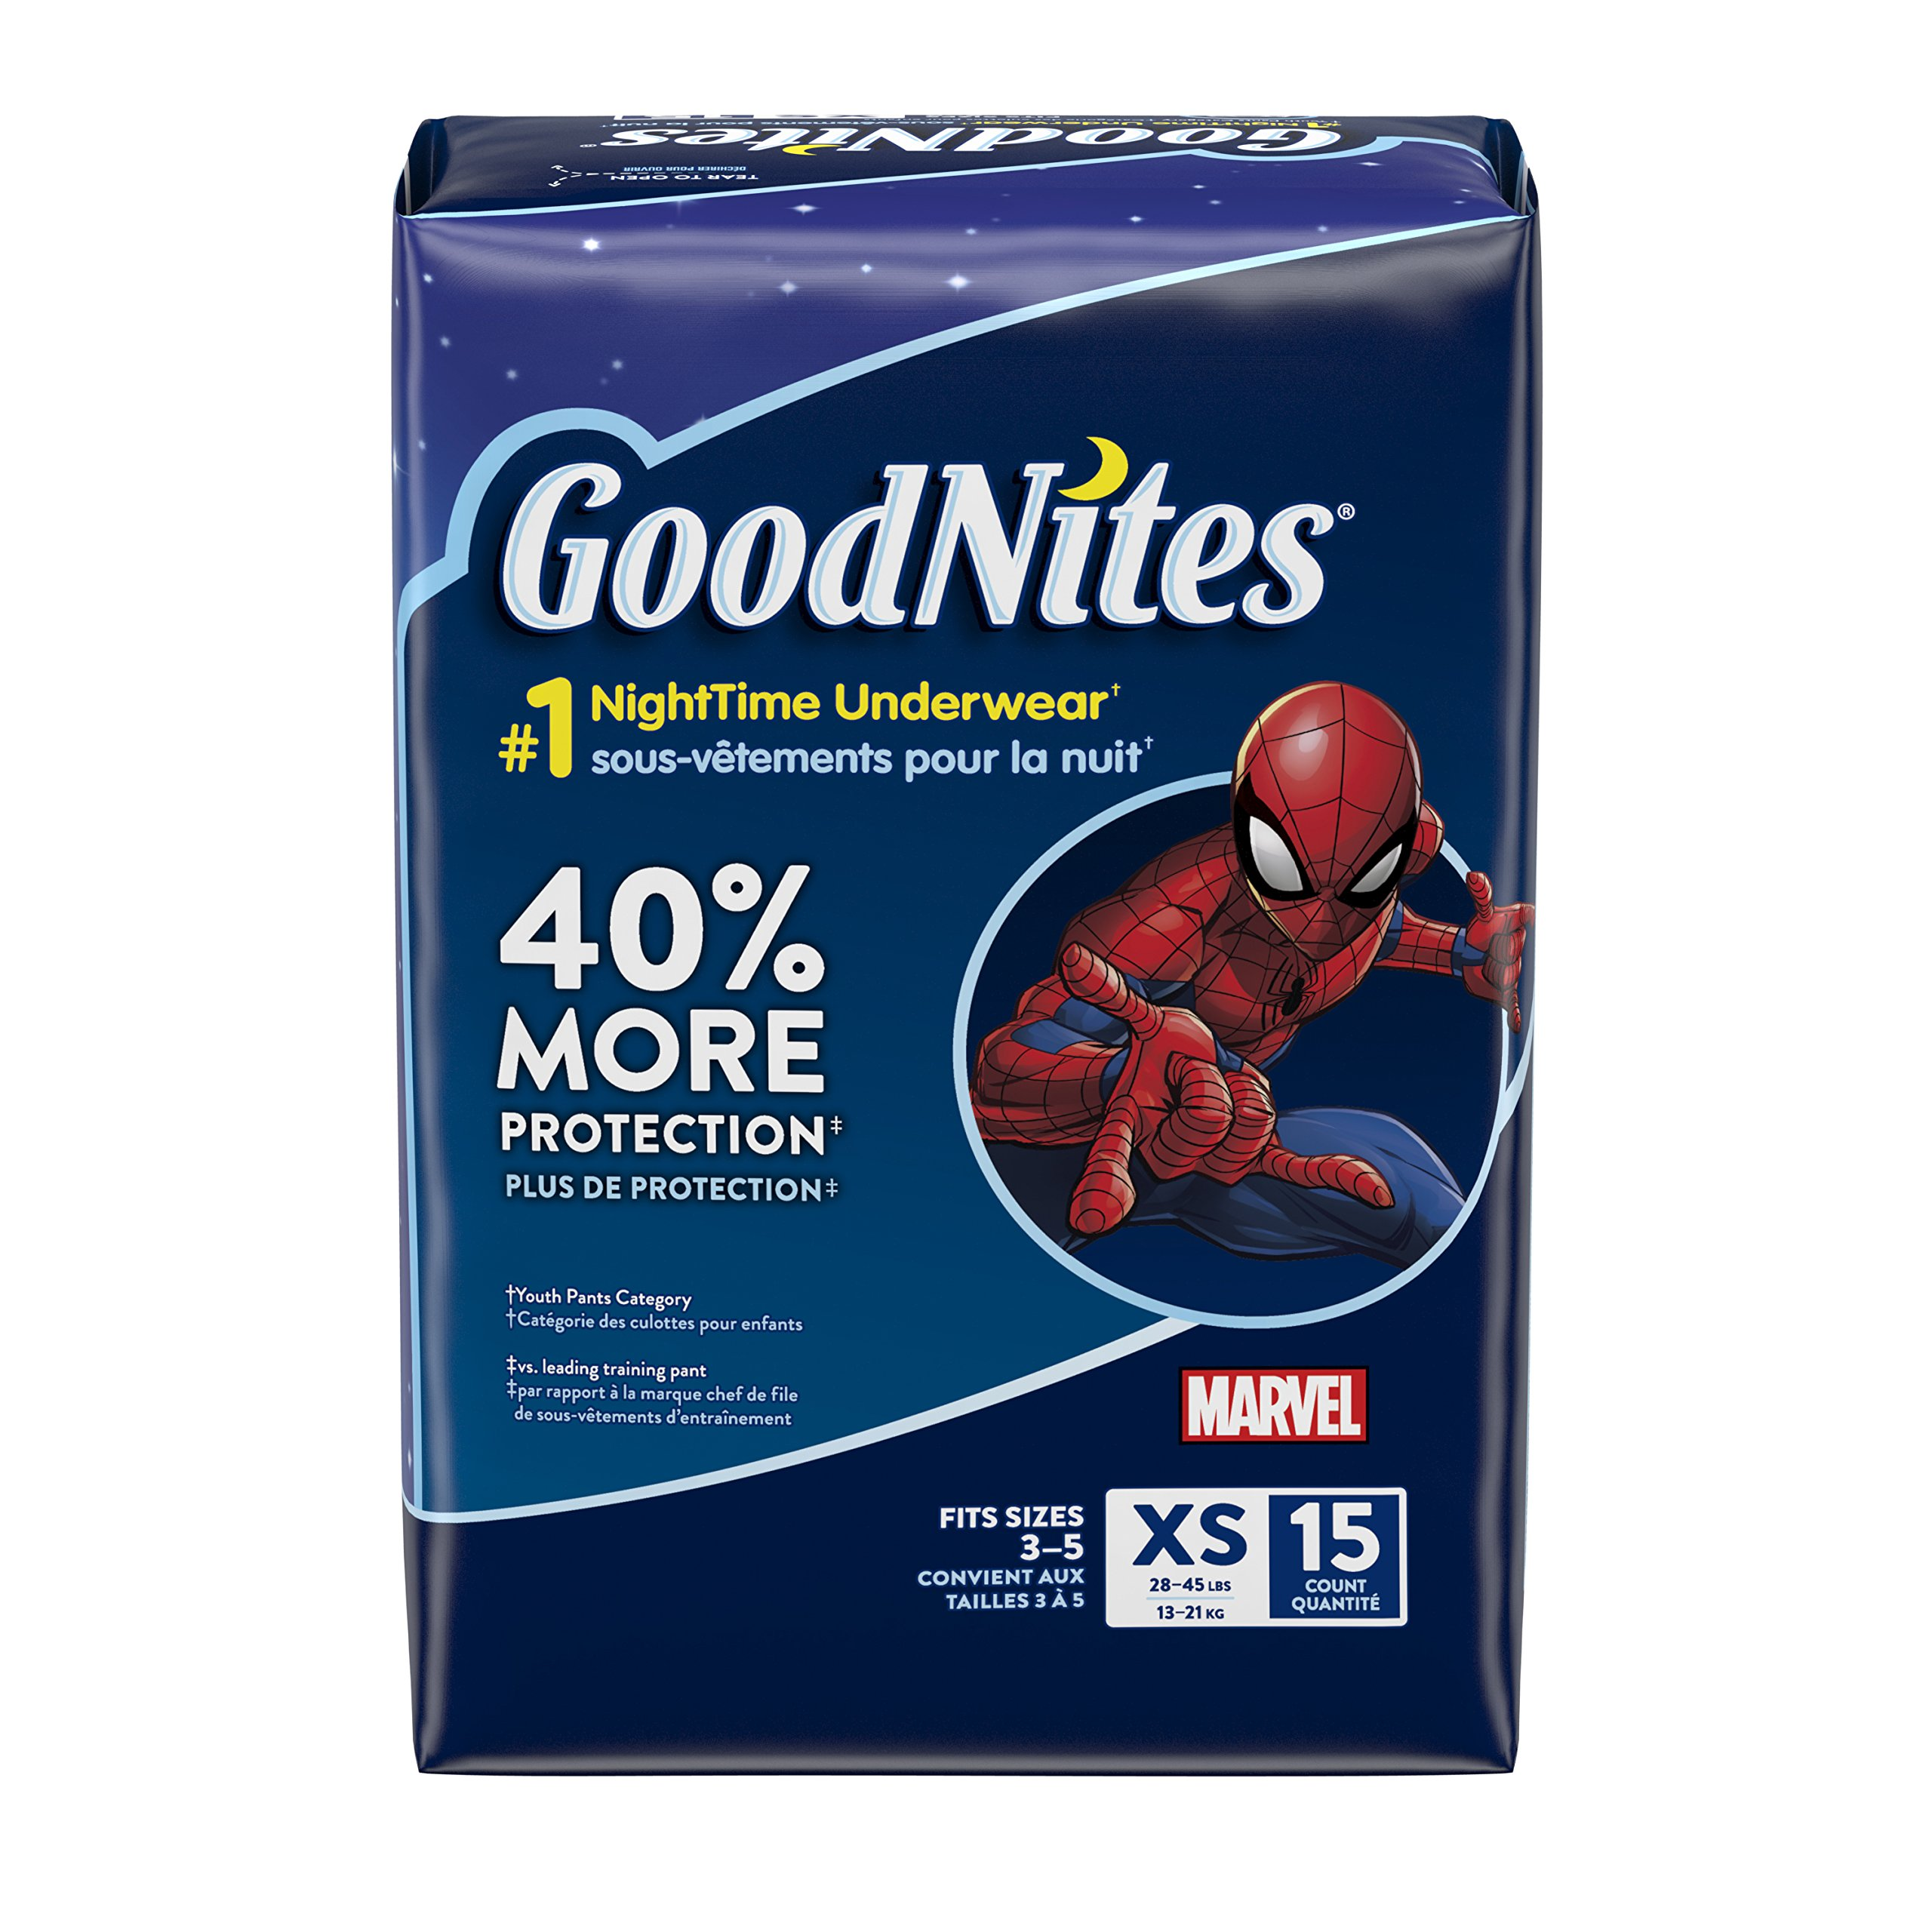 GoodNites Bedtime Bedwetting Underwear for Boys, XS, 15 Count (4 Packages), Packaging May Vary